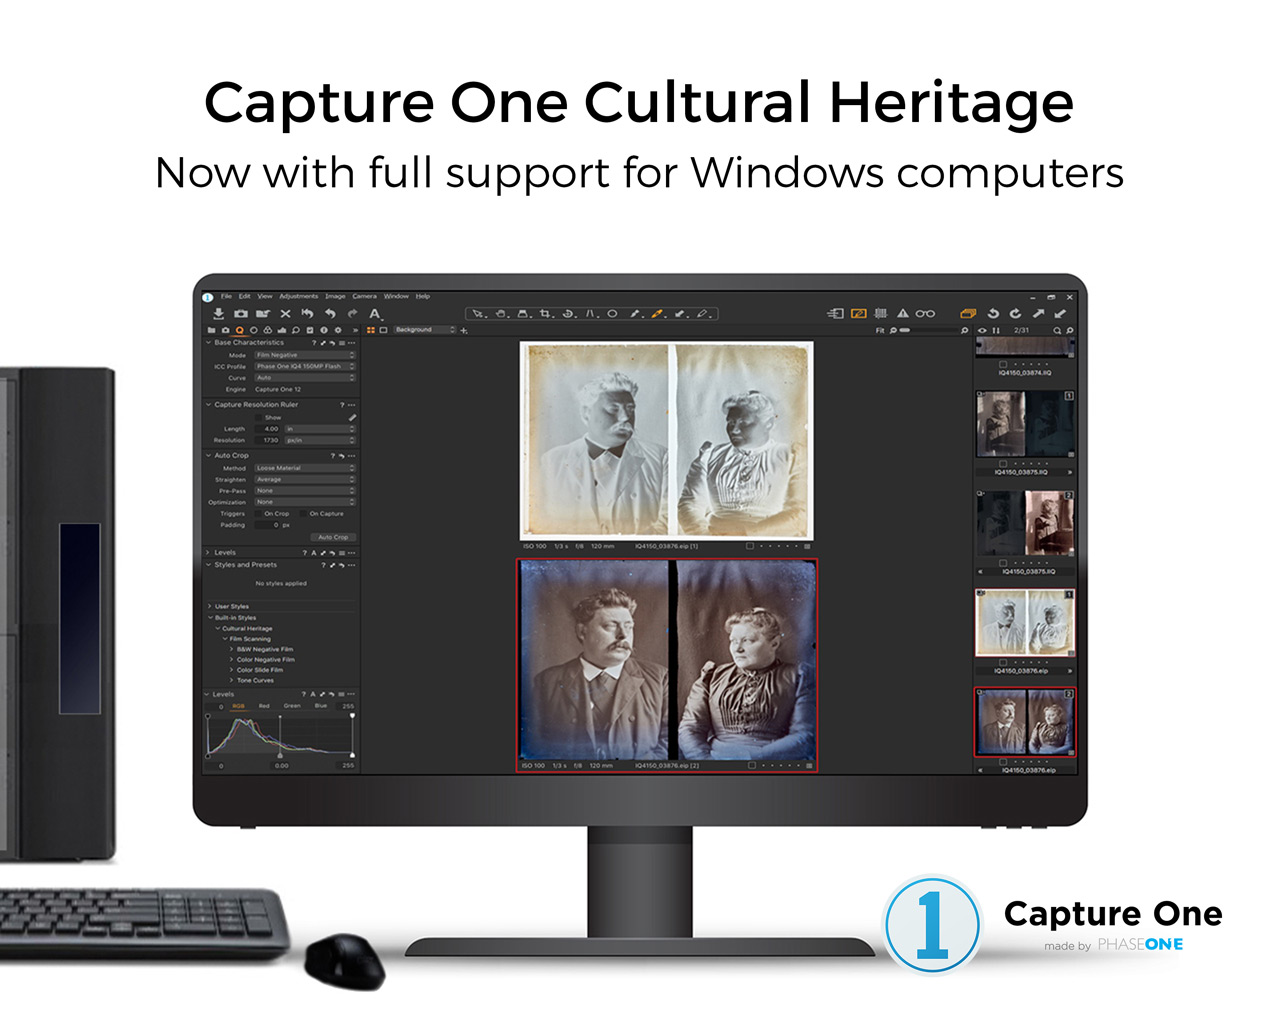 Phase One Cultural Heritage for Windows